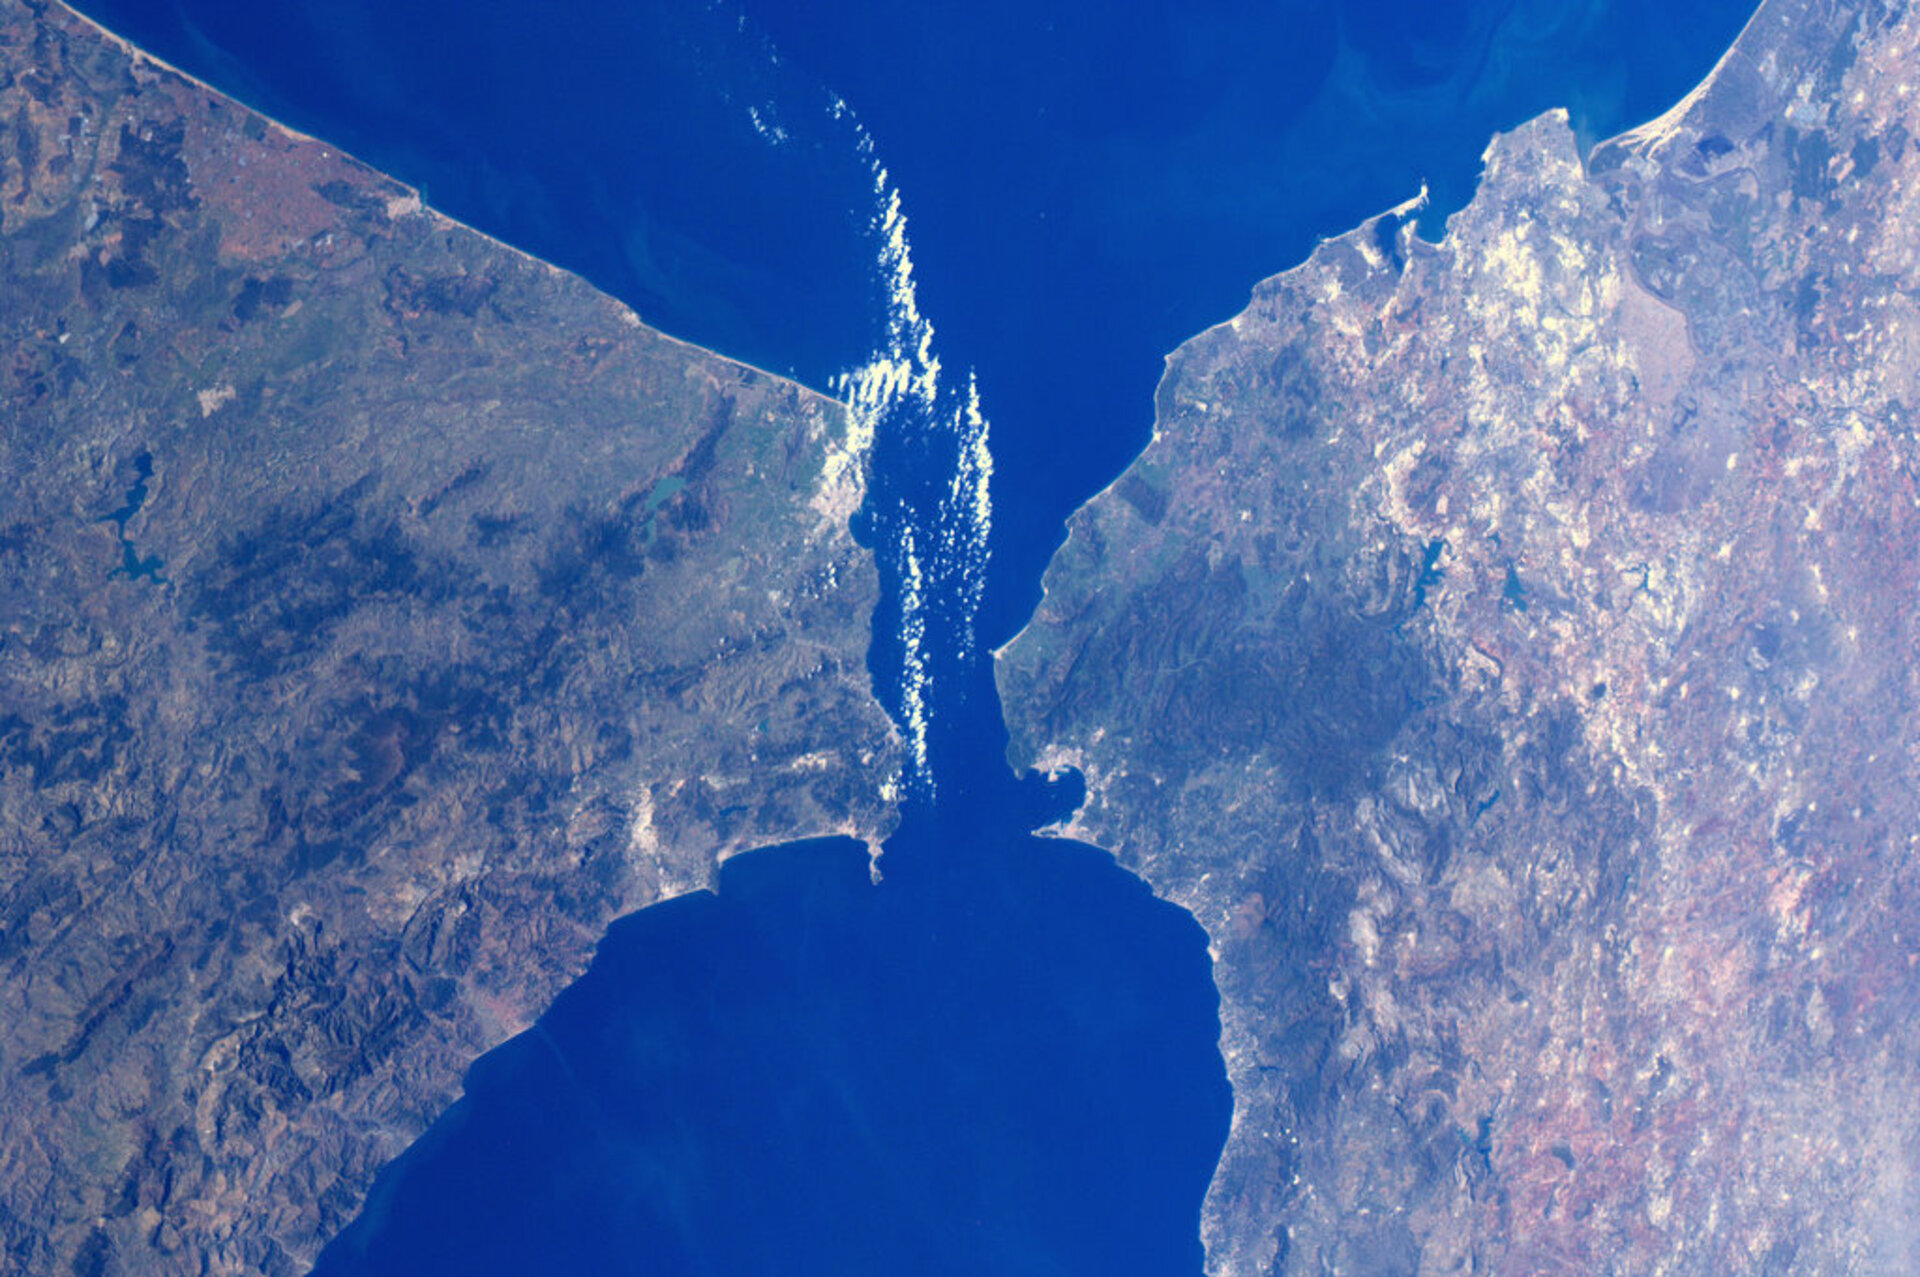 The Strait of Gibraltar, as seen from the ISS